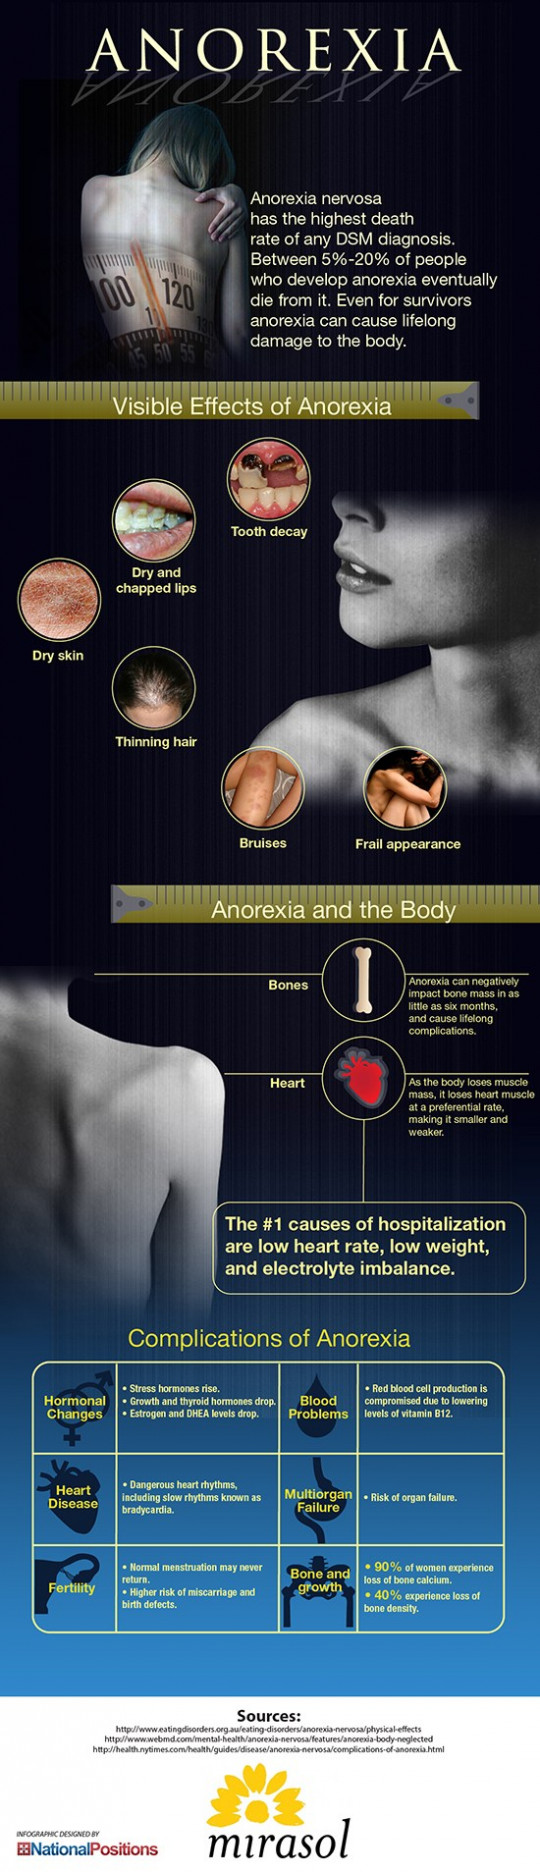 Symptoms of Anorexia and Anorexic People